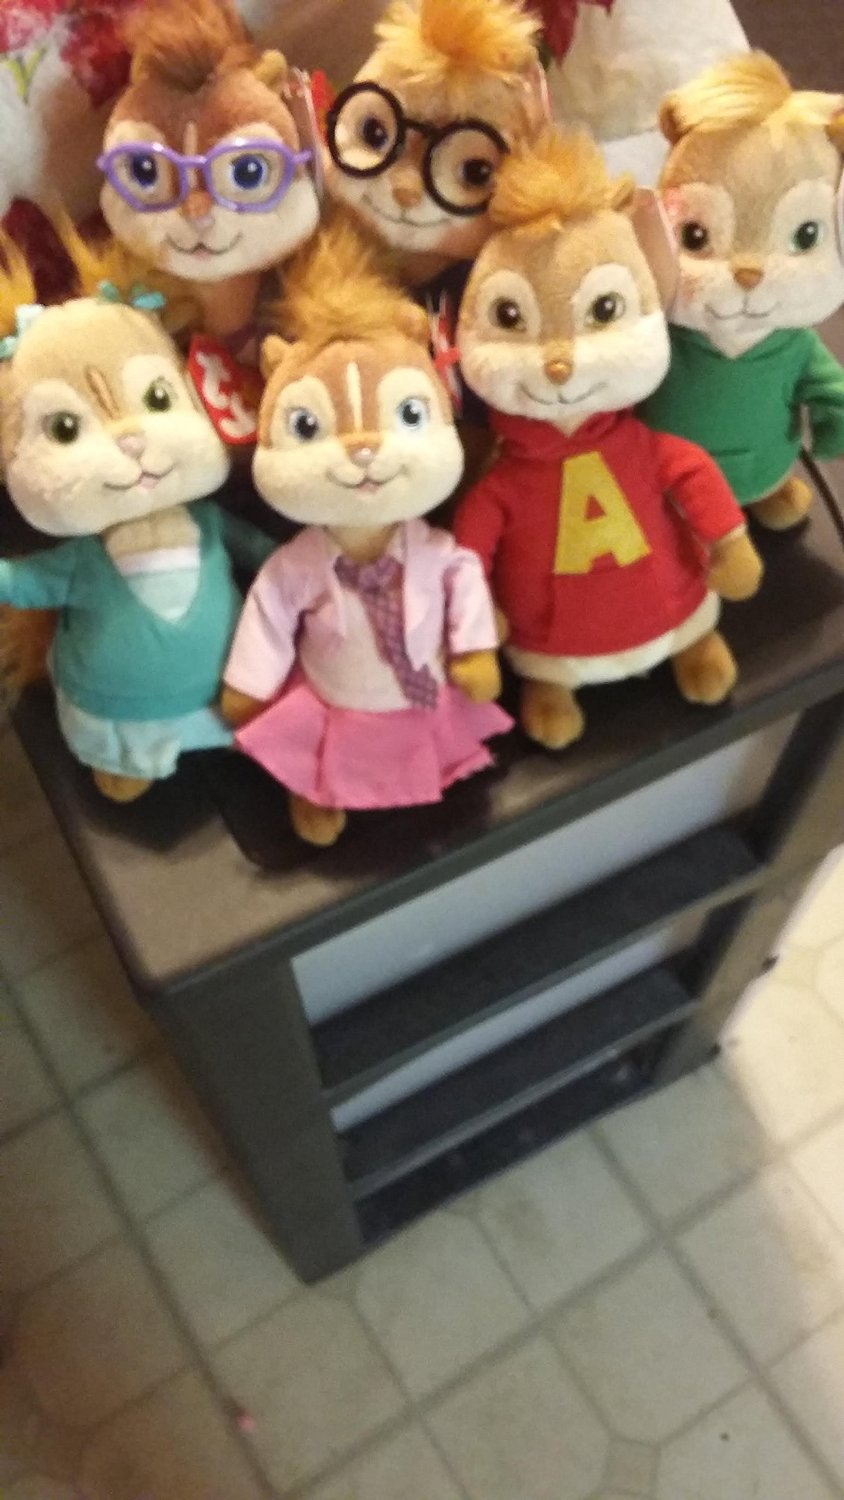 Alvin And The Chipmunks Alvin And Brittany buy ty beanie babies - brittany, eleanor & jeanette